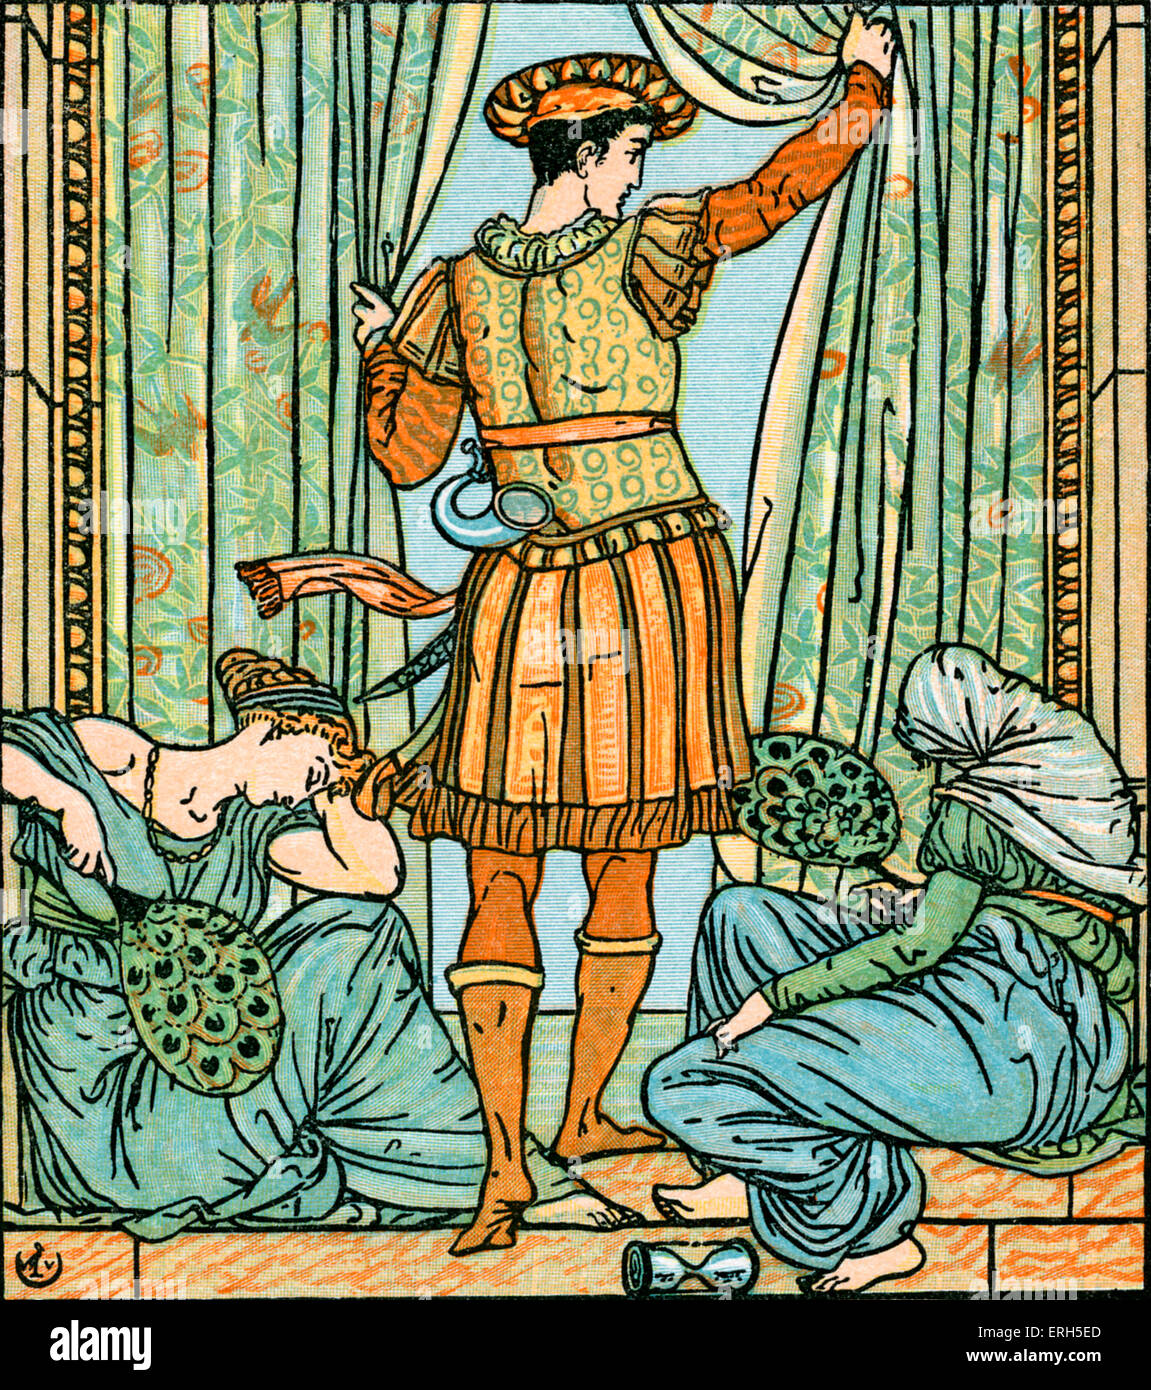 Sleeping Beauty written and illustrated by Walter Crane and published in 1914. The scene depicts the Prince investigating - Stock Image